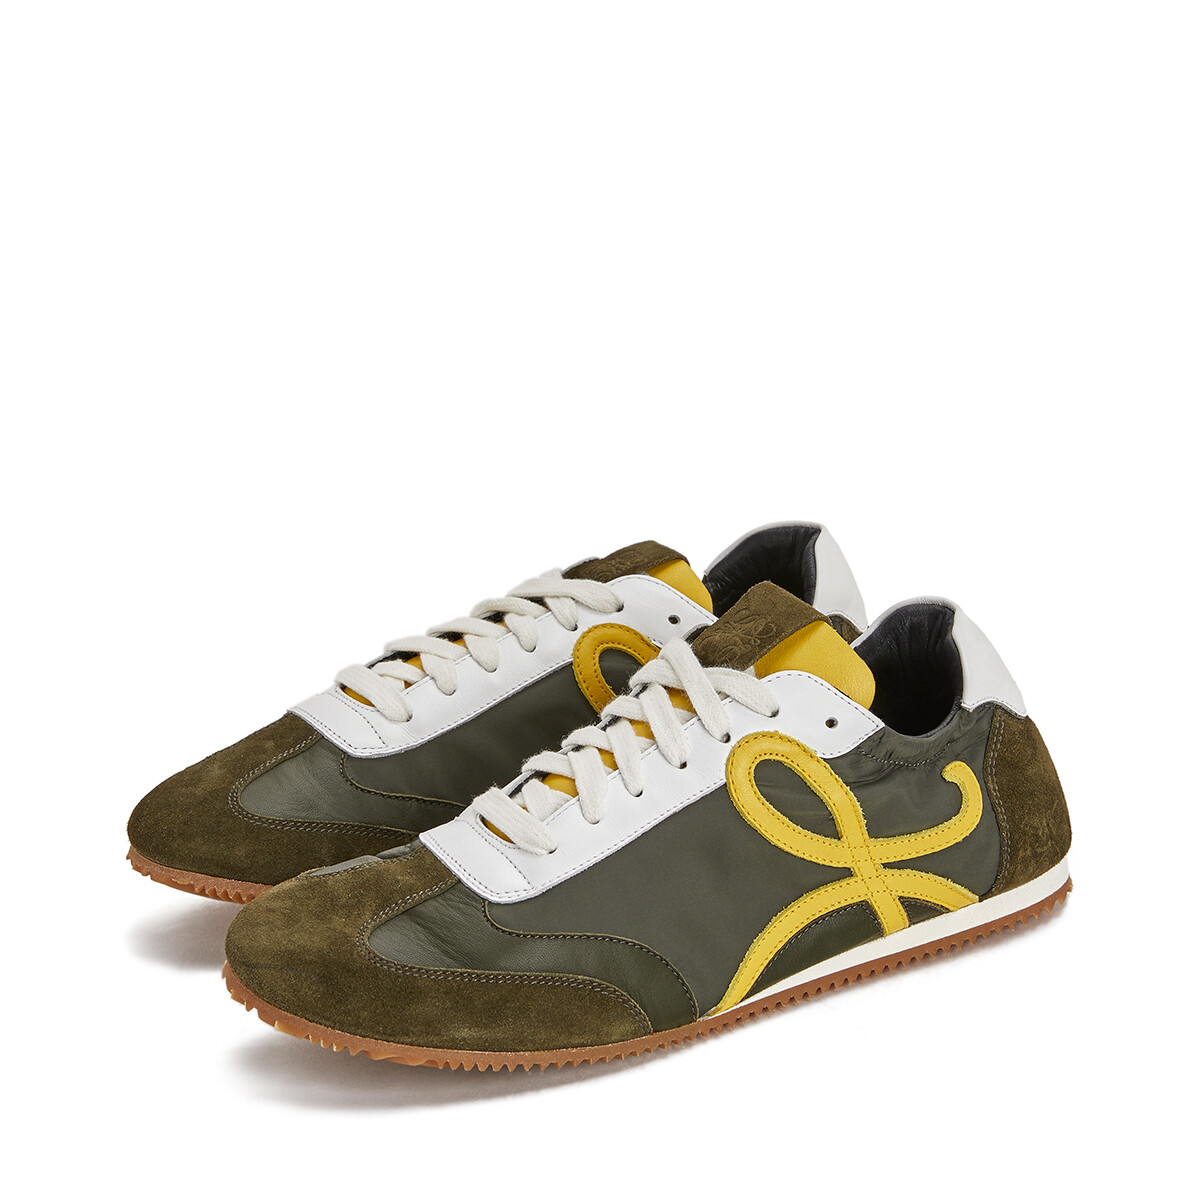 LOEWE Ballet Runner Dark Green/Multicolour front